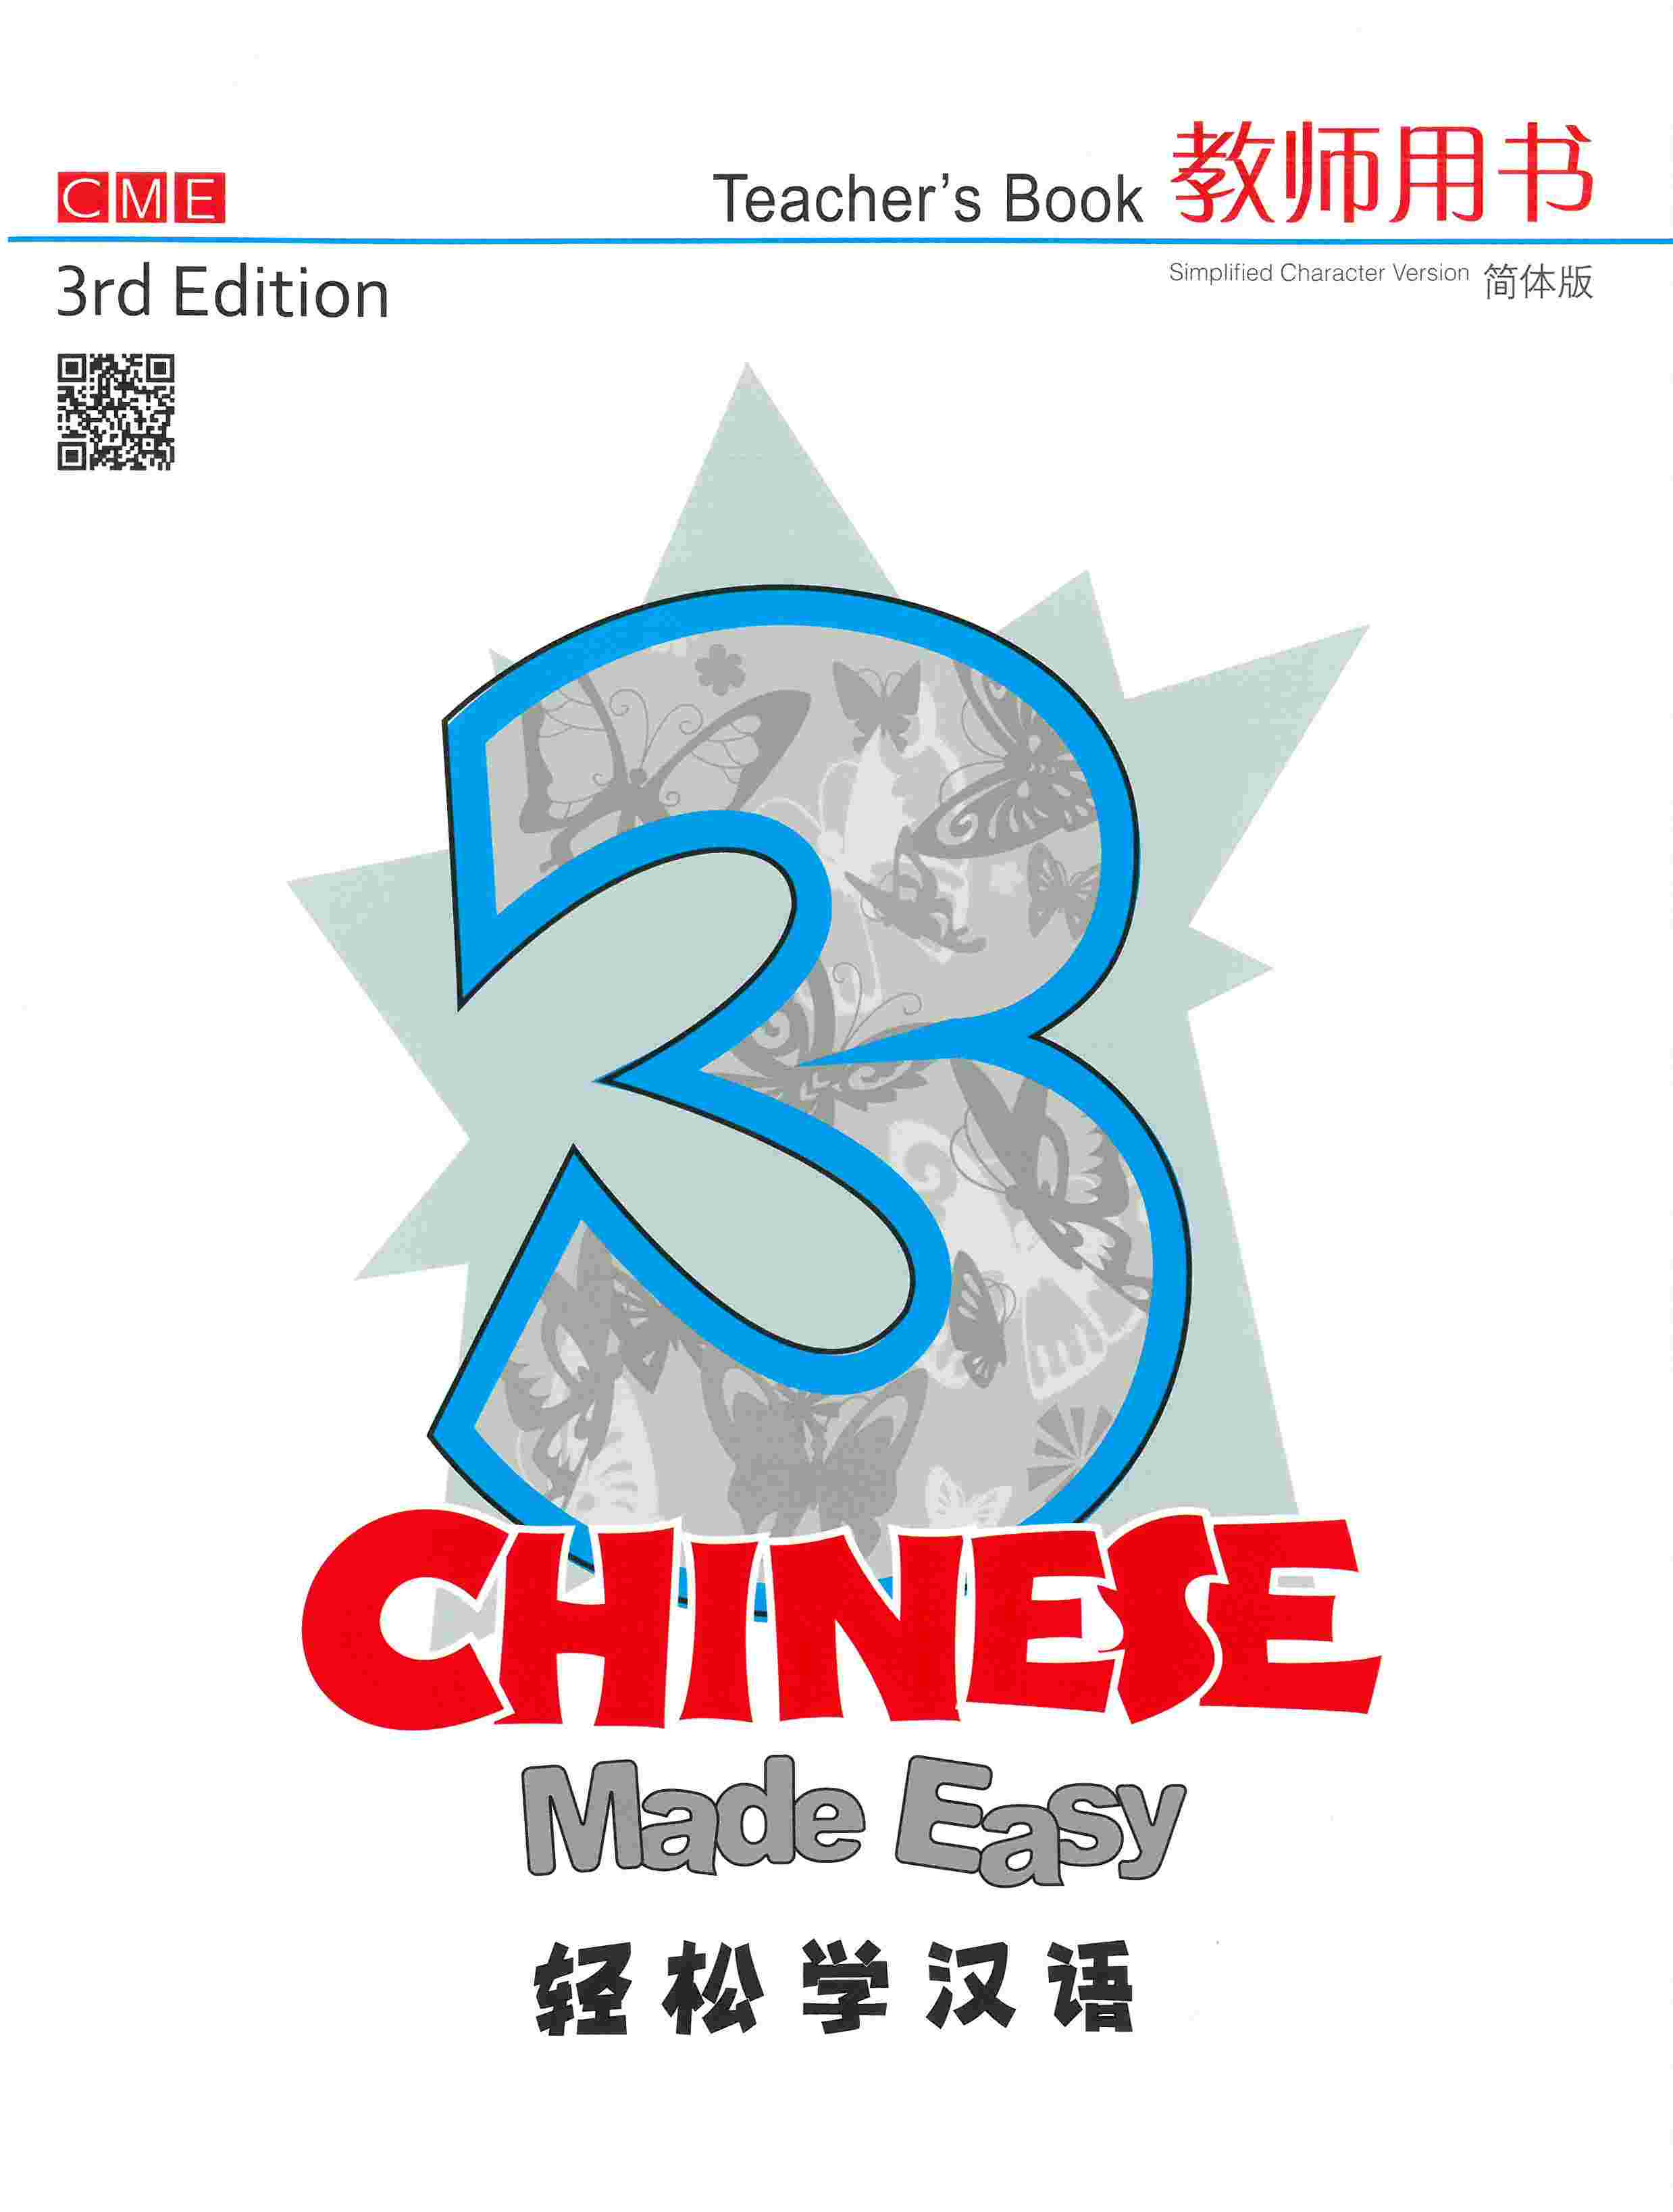 Chinese Made Easy Teacher's Book 3 (Simplified Characters)  轻松学汉语教师用书三